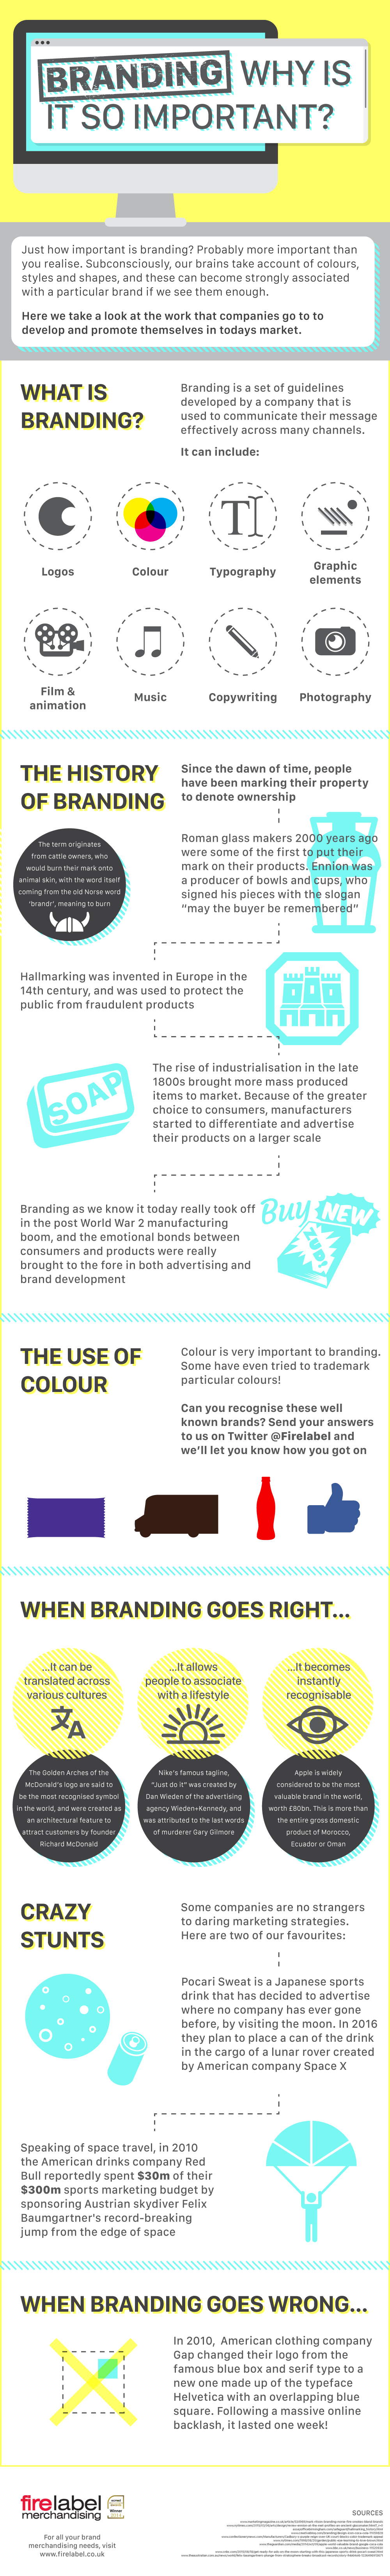 why is branding important infographic